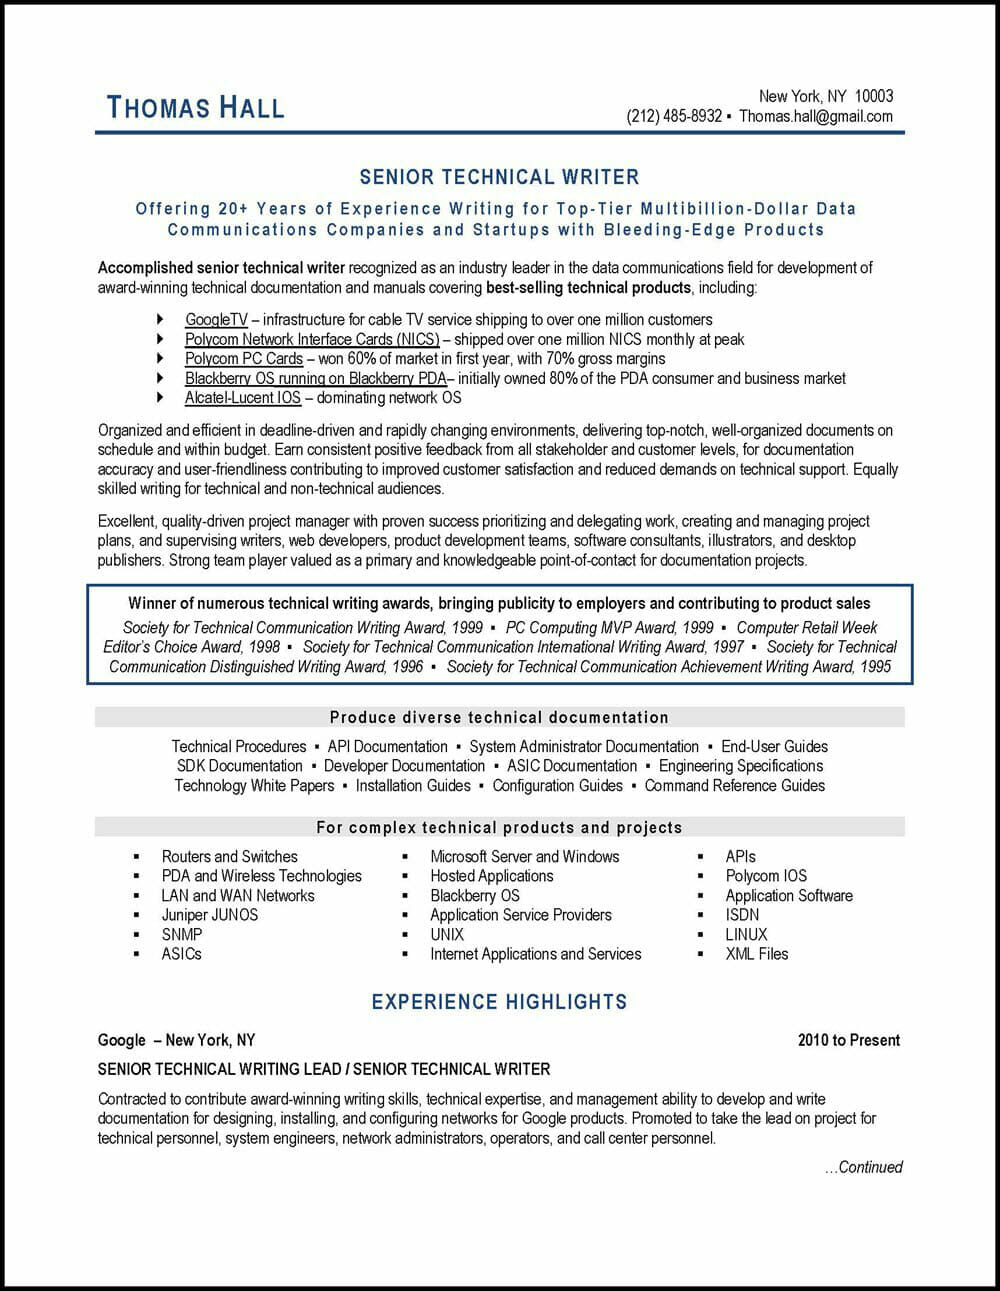 technical writer resume example distinctive career services tech industry generic Resume Resume Writer Tech Industry